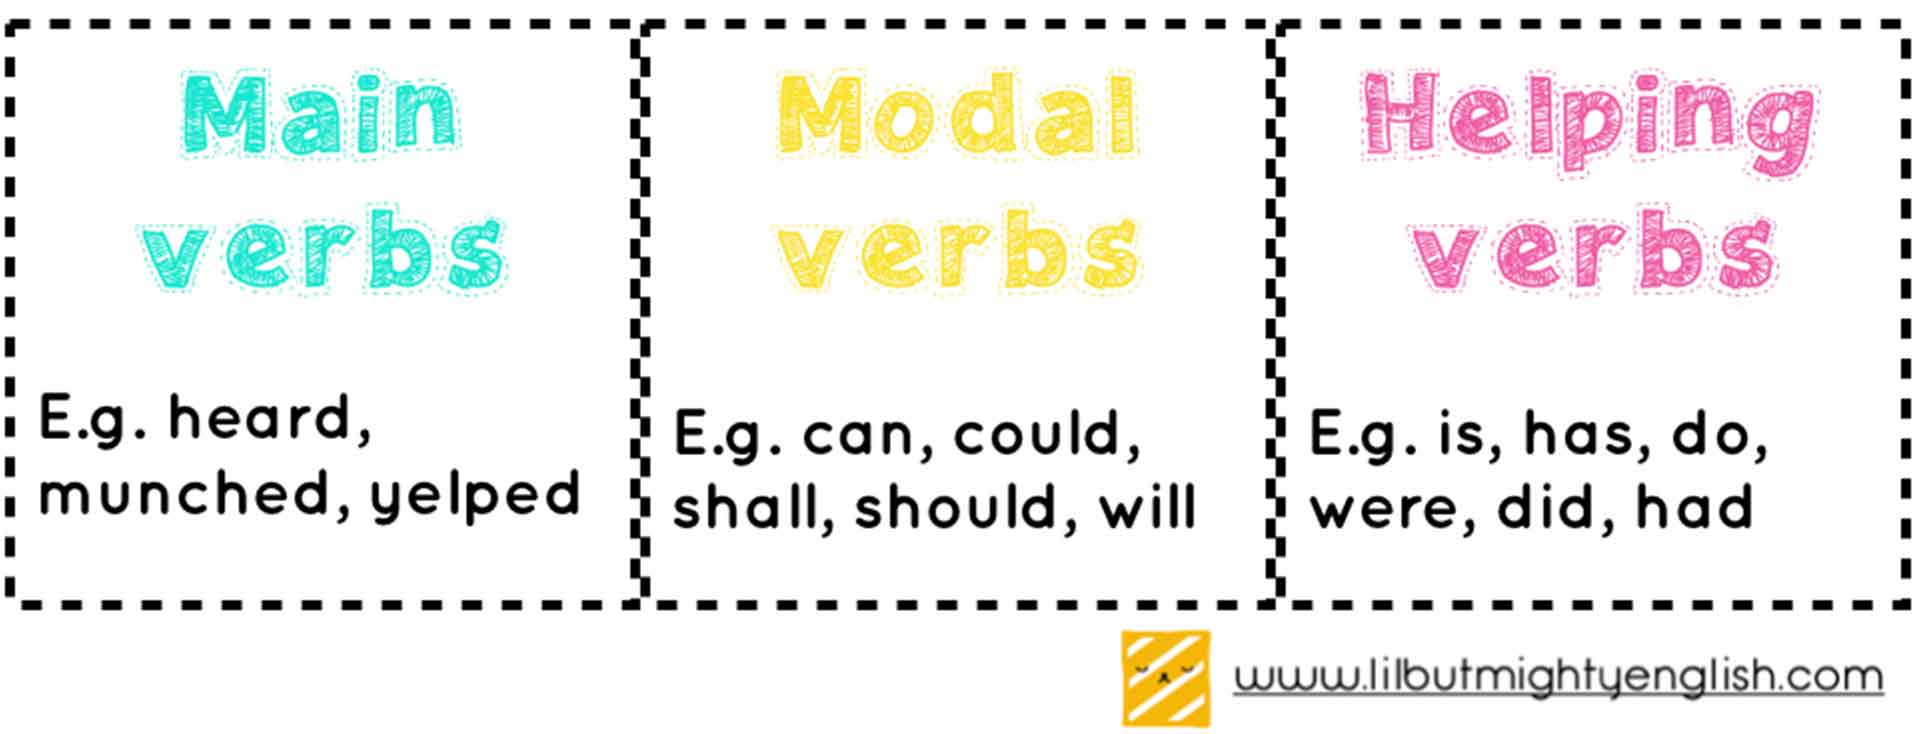 What are verbs? Table